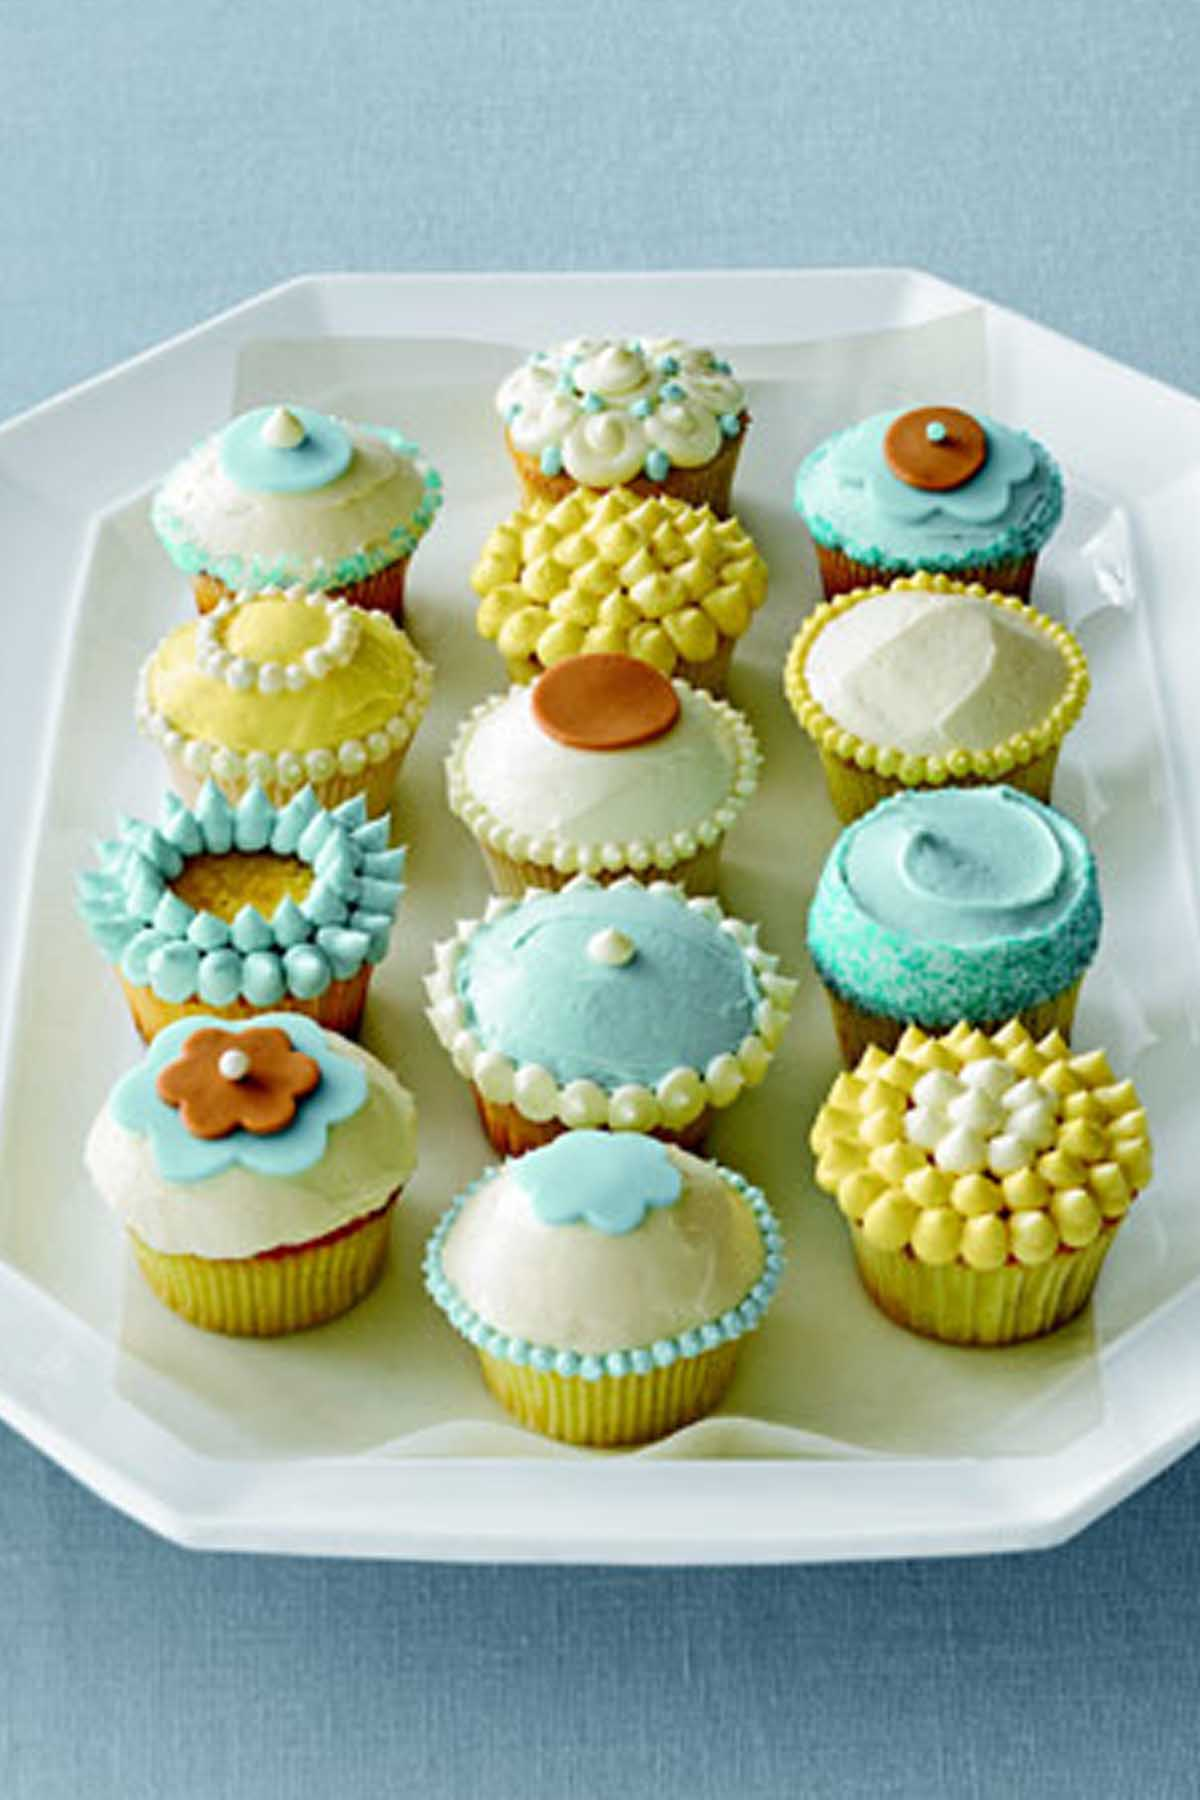 Decorating Cupcakes 30 best cupcake decorating ideas - easy recipes for homemade cupcakes